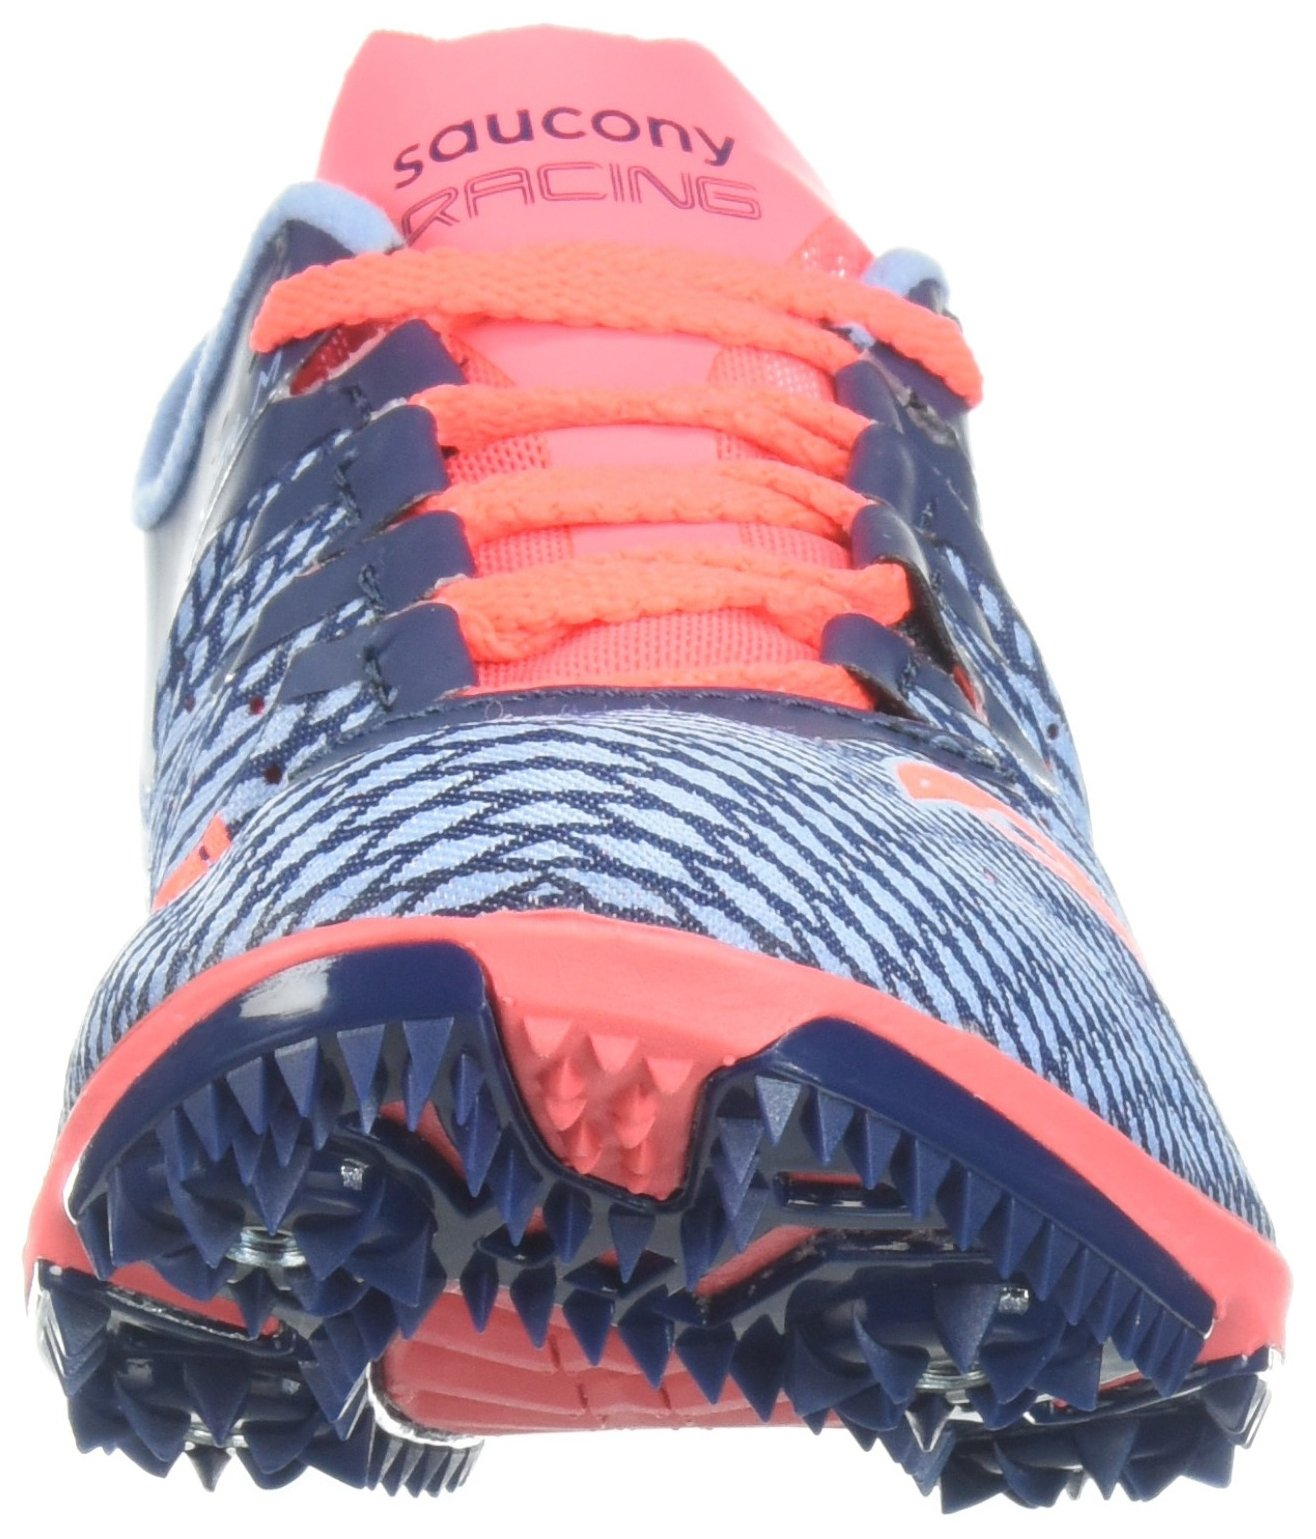 7156PIOw4yL - Saucony Endorphin 2 Women's Running Spikes - SS19